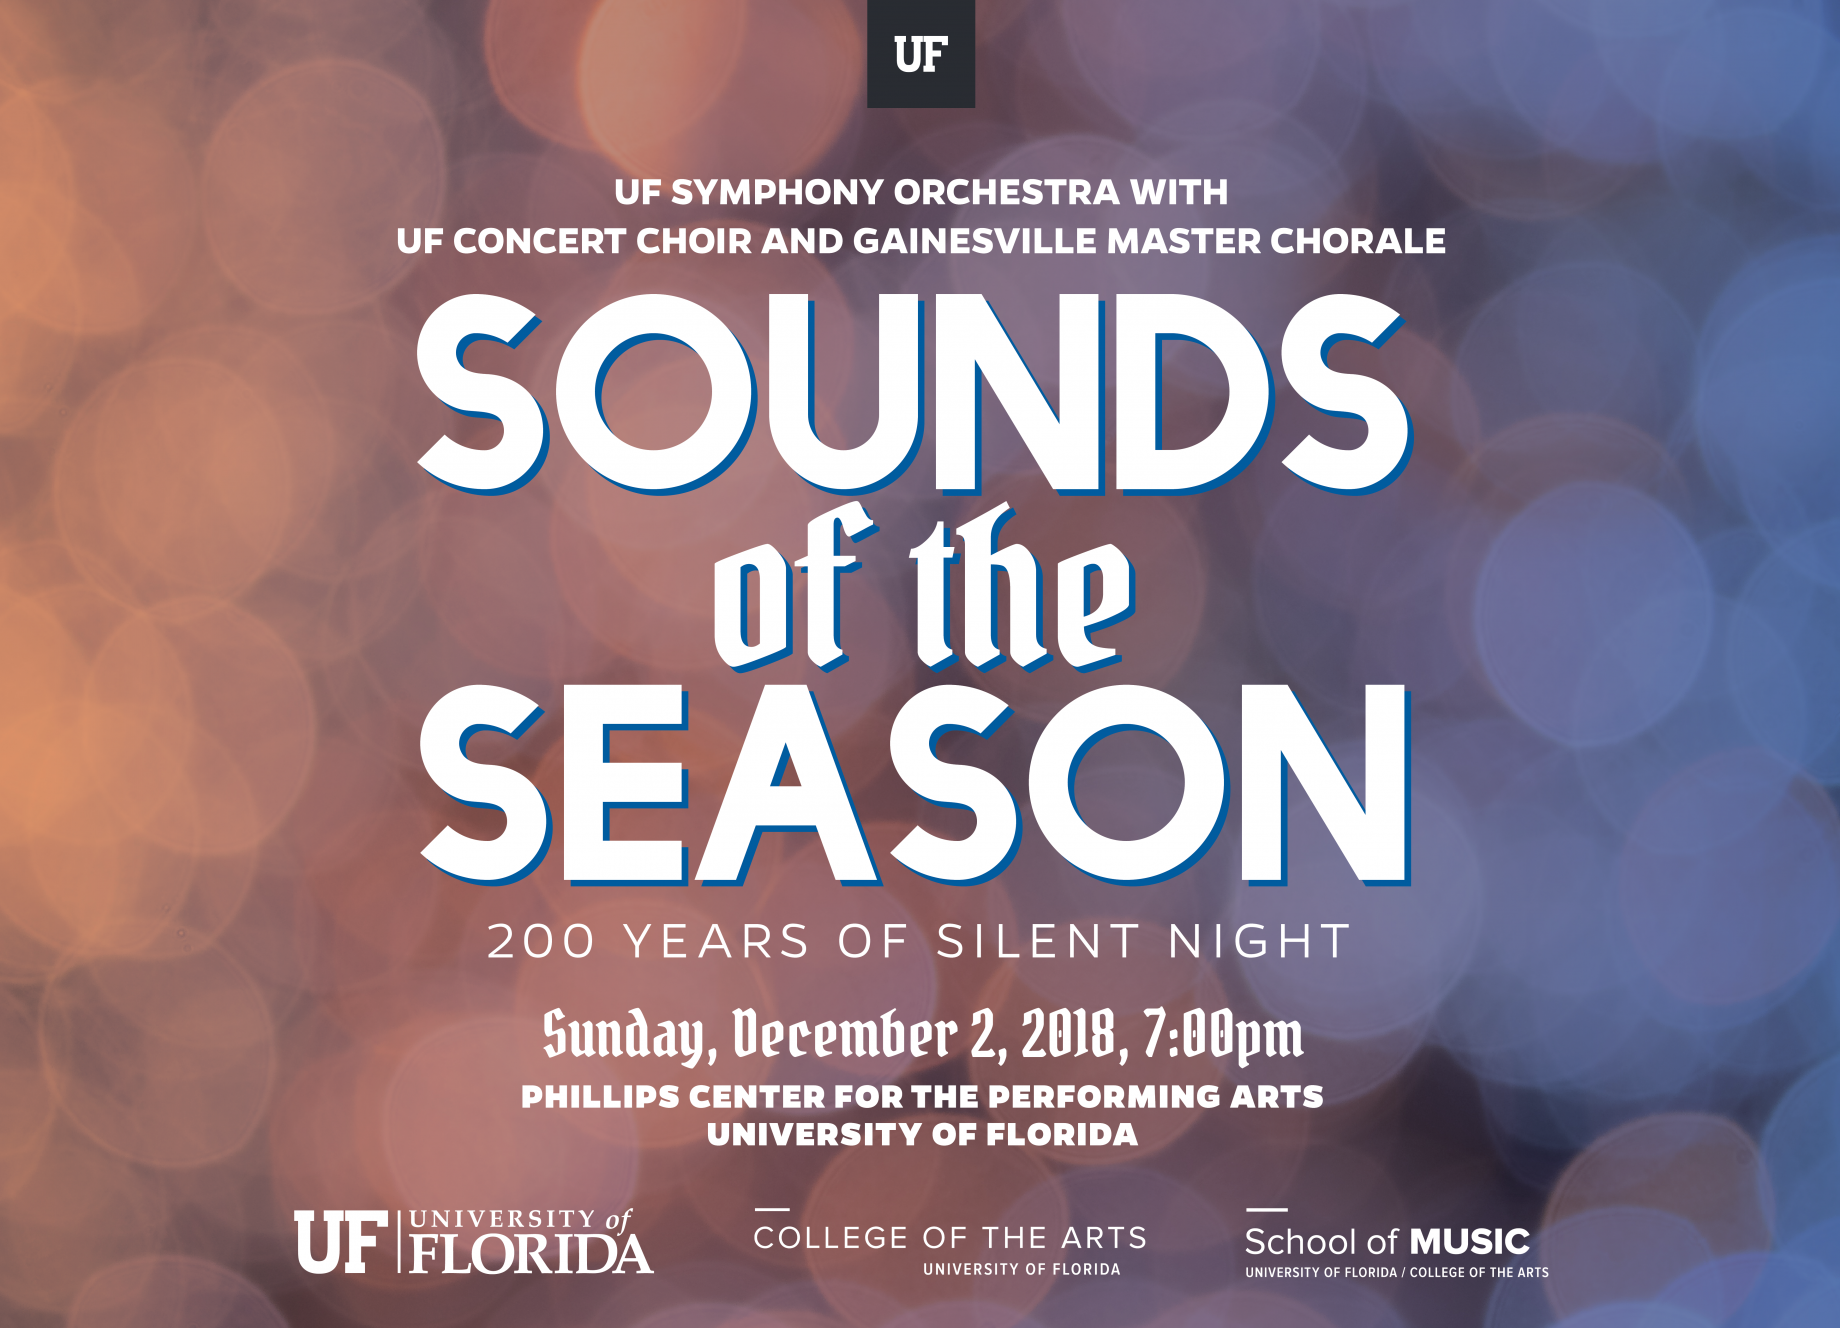 Sounds of the Season | Events | College of the Arts